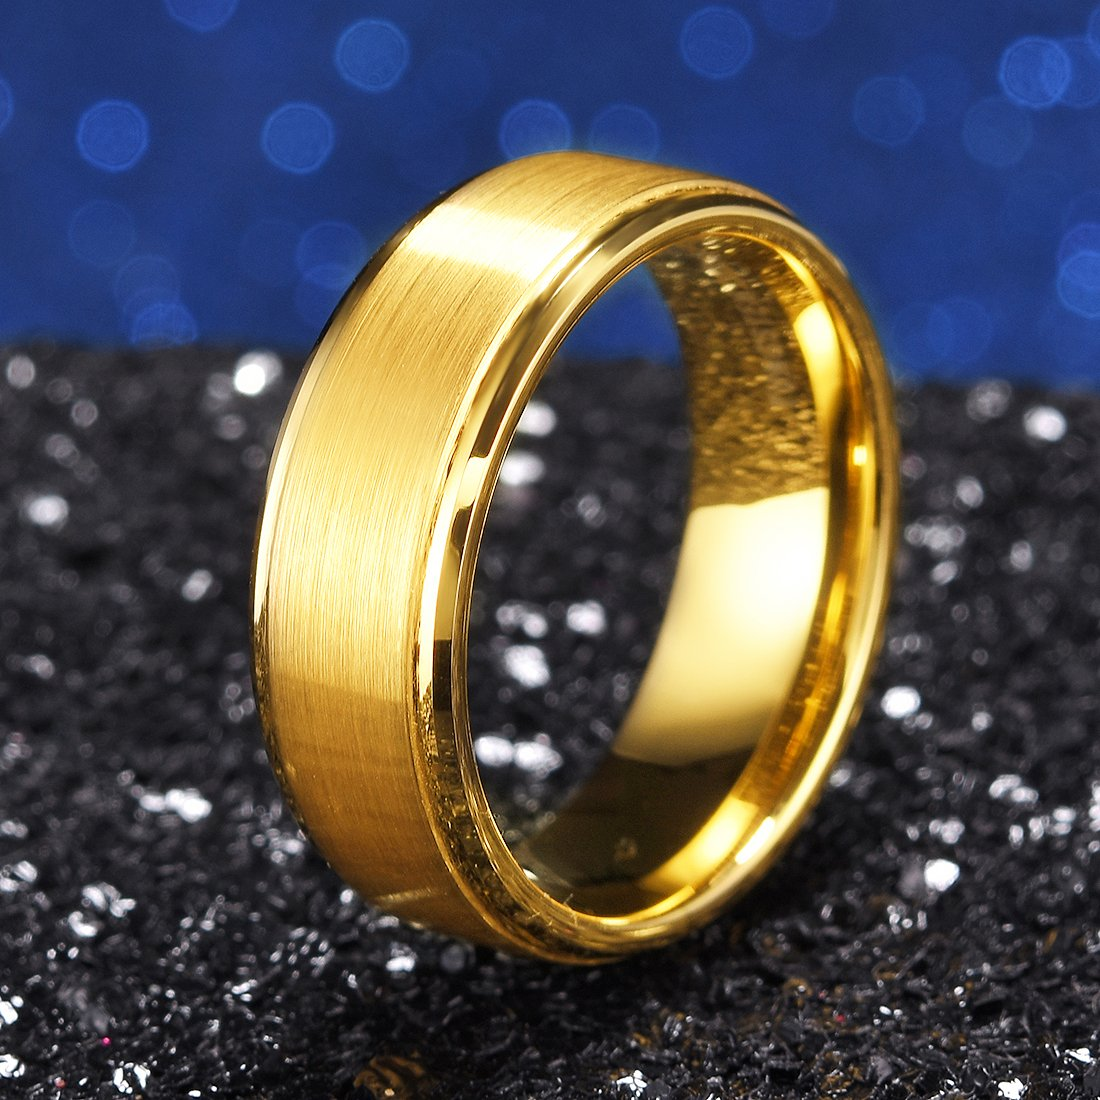 163dad65712 King Will Glory Womens Mens 8mm Matte Brushed Tungsten Carbide Ring 14K  Yellow Gold Wedding Band Comfort Fit - OY-R100   Wedding Rings   Clothing